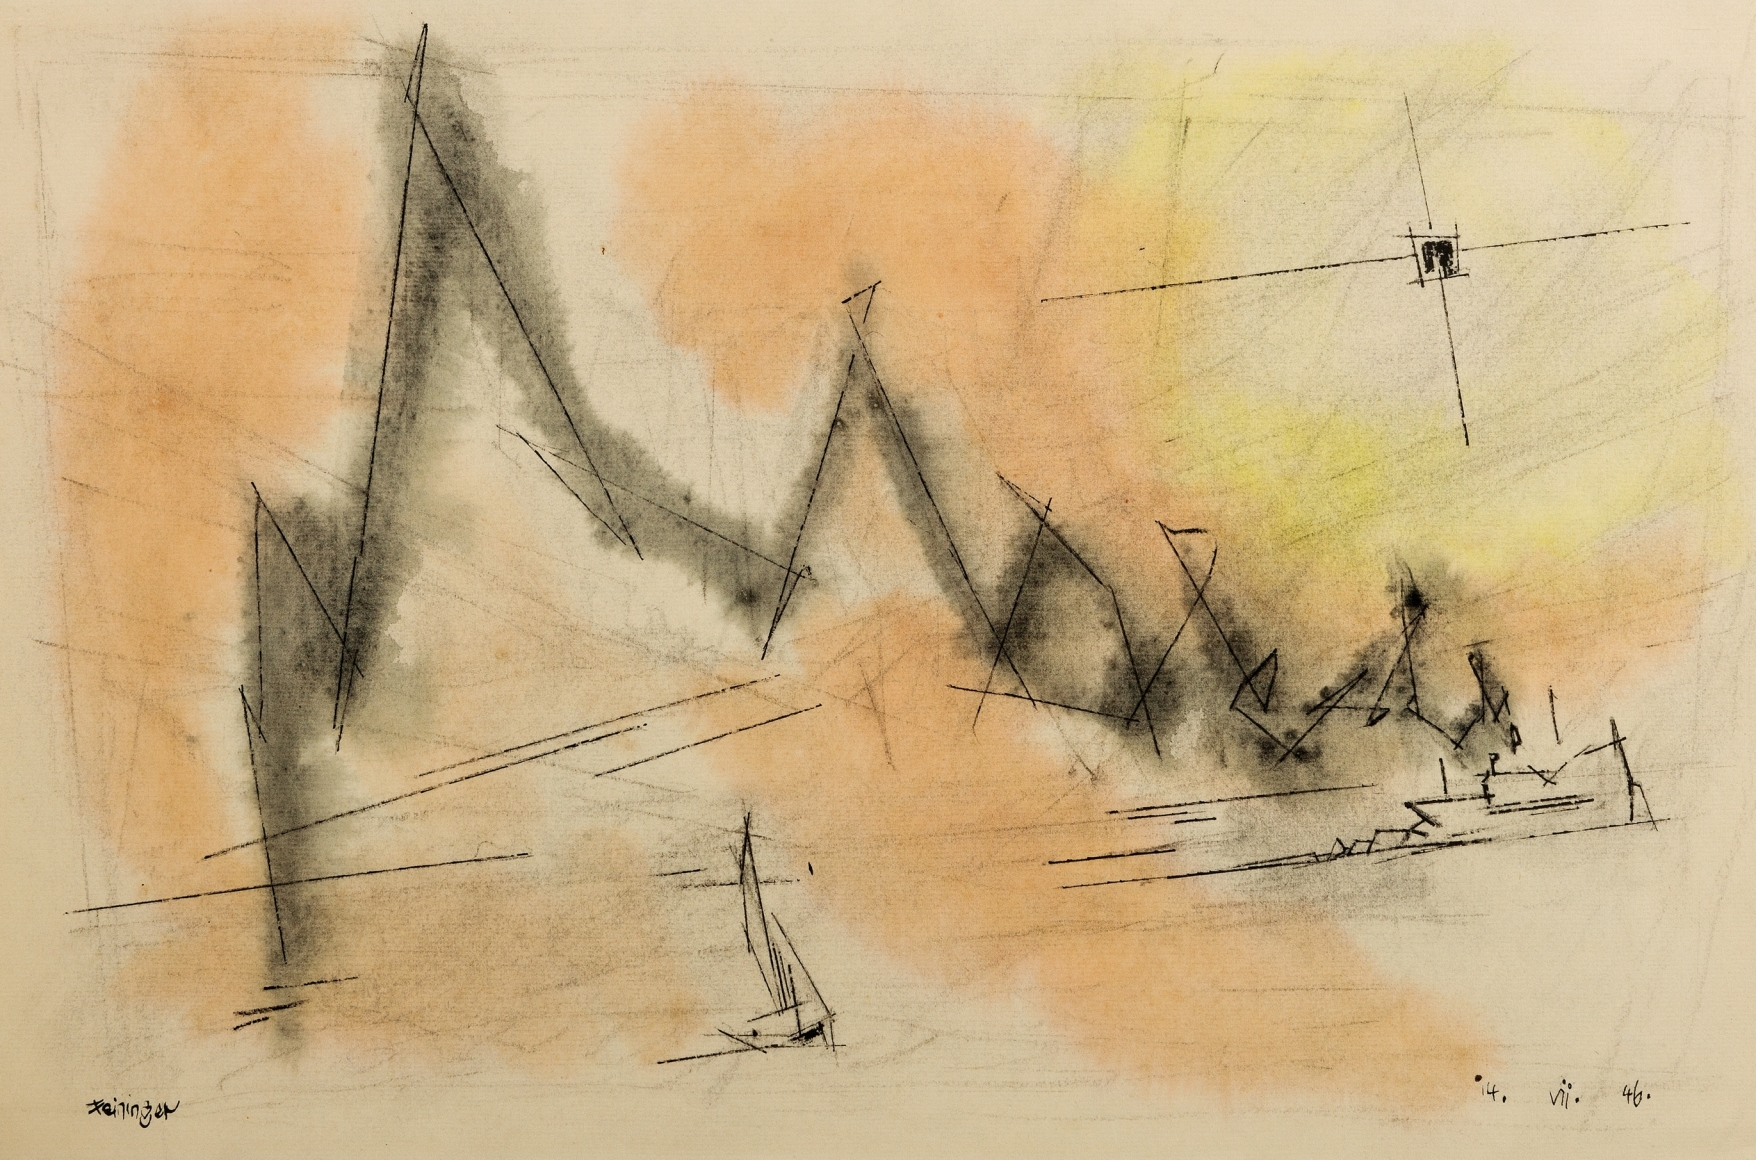 Lyonel Feininger (1871-1956), (Smoke-script), 1946, Ink and watercolor on paper, 12 3/4 x 18 7/8 in. (32.4 x 47.9 cm), Signed lower left: Feininger, Dated lower right: 14. VII. 46., Inscribed bottom left: X. L.F., Titled bottom right: Smoke Script